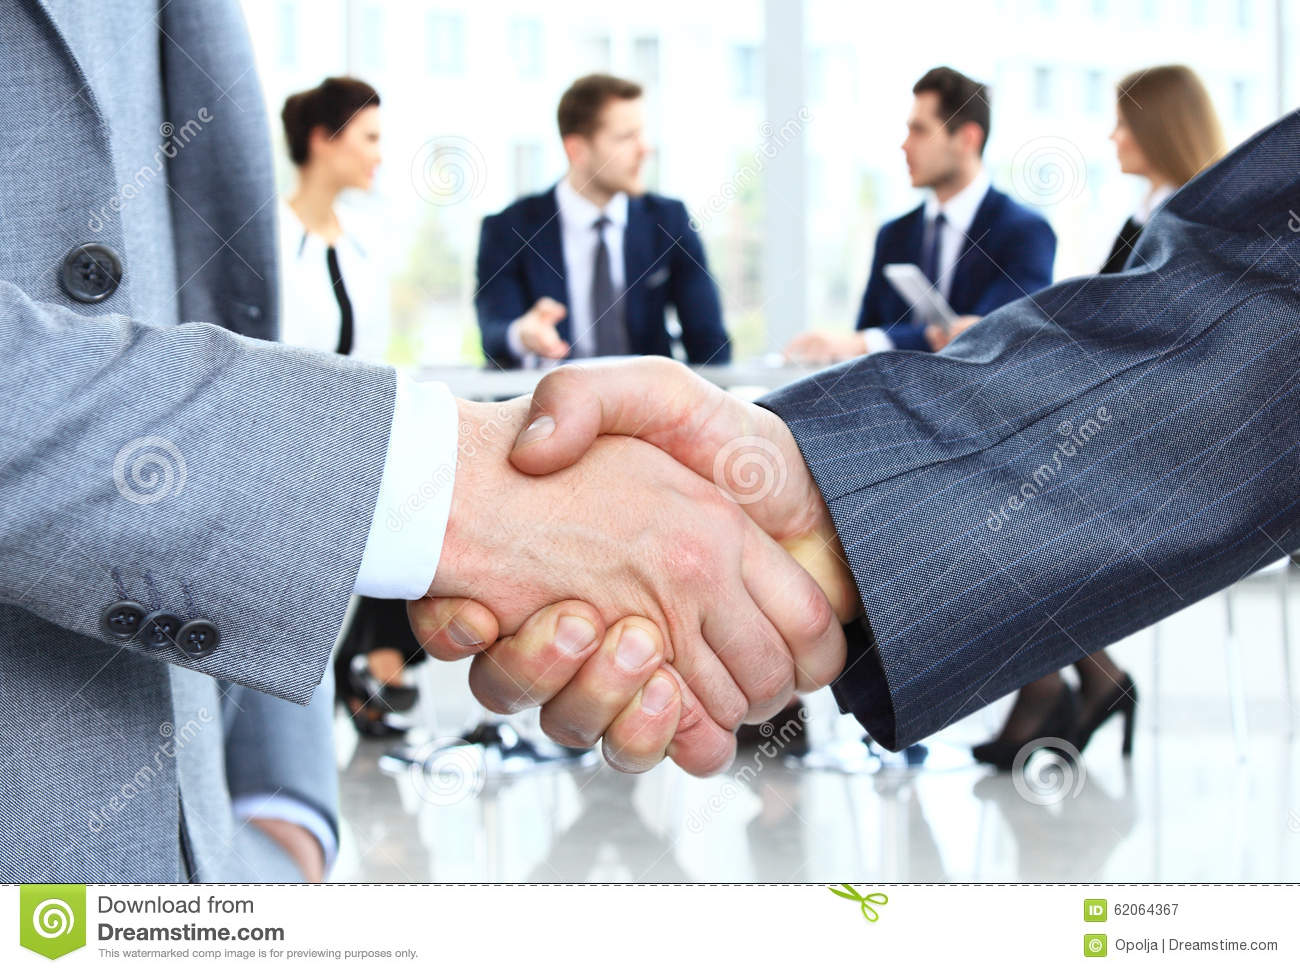 Closeup Of A Business Handshake People Shaking